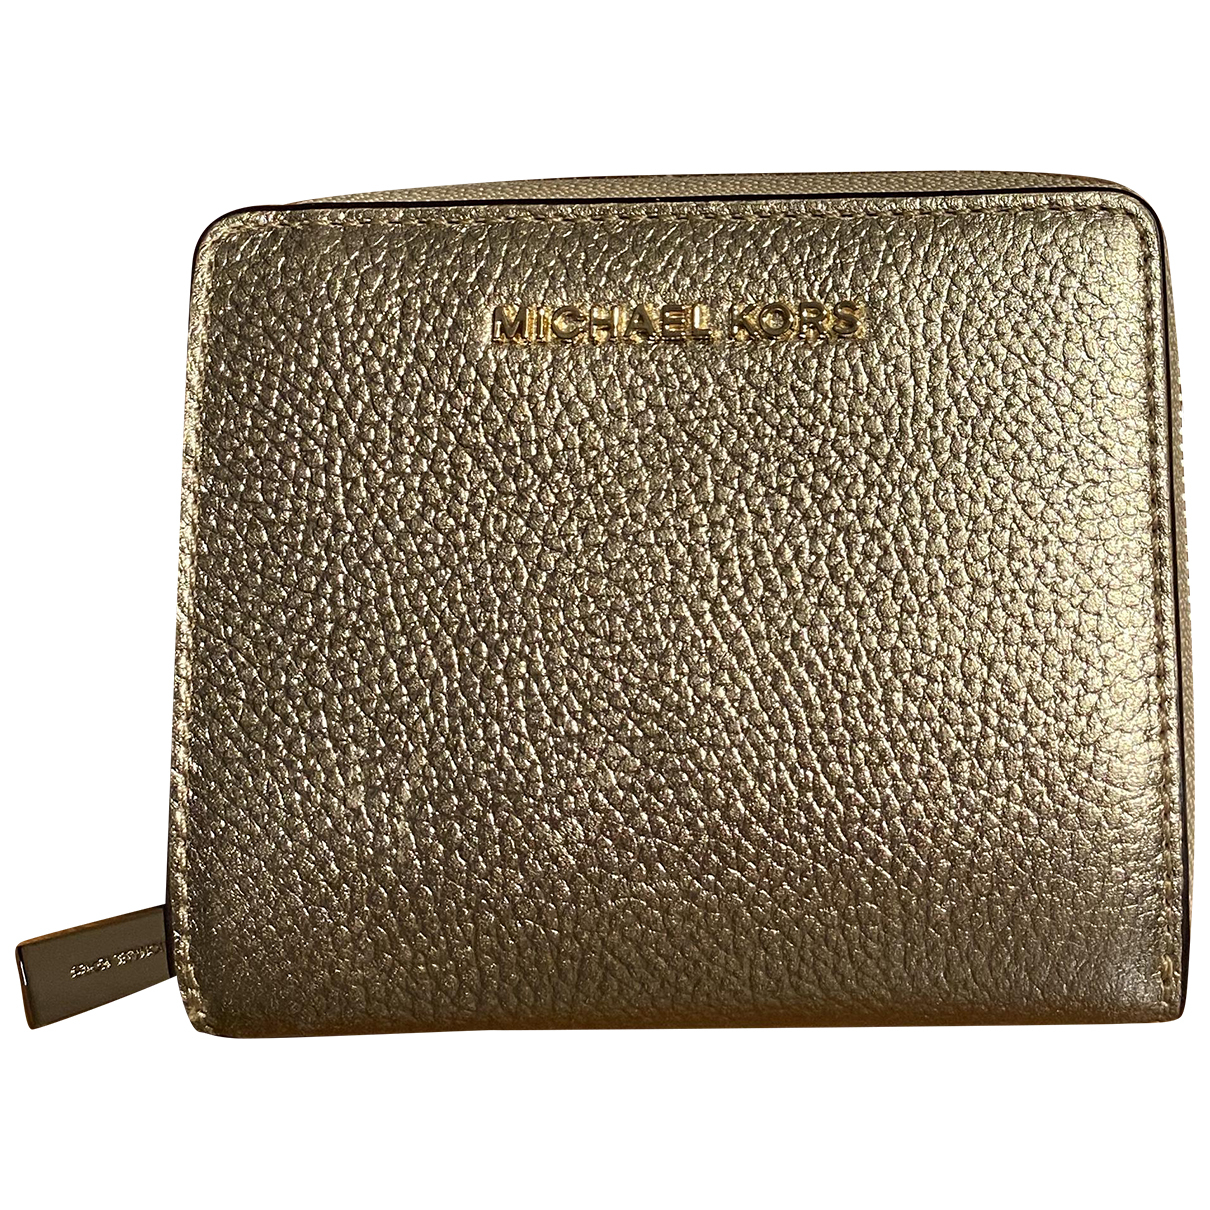 Michael Kors N Gold Leather wallet for Women N